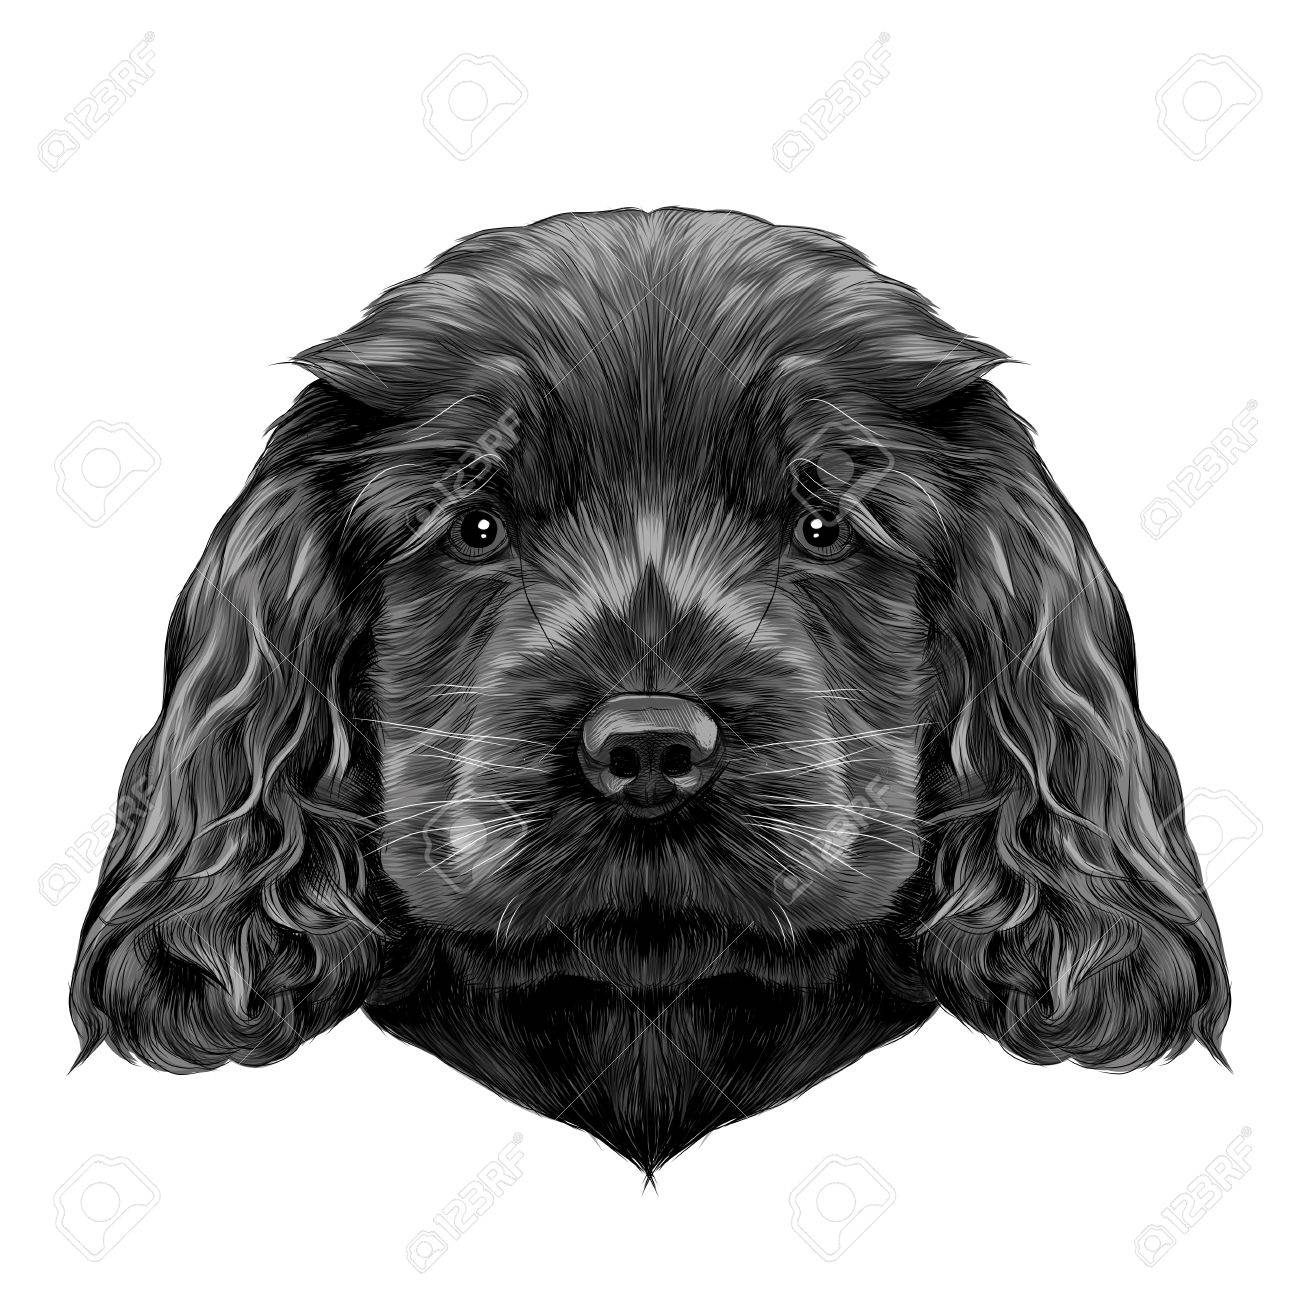 Dog Breed Cocker Spaniel Puppy Sketch Vector Graphics Color Royalty Free Cliparts Vectors And Stock Illustration Image 80718935